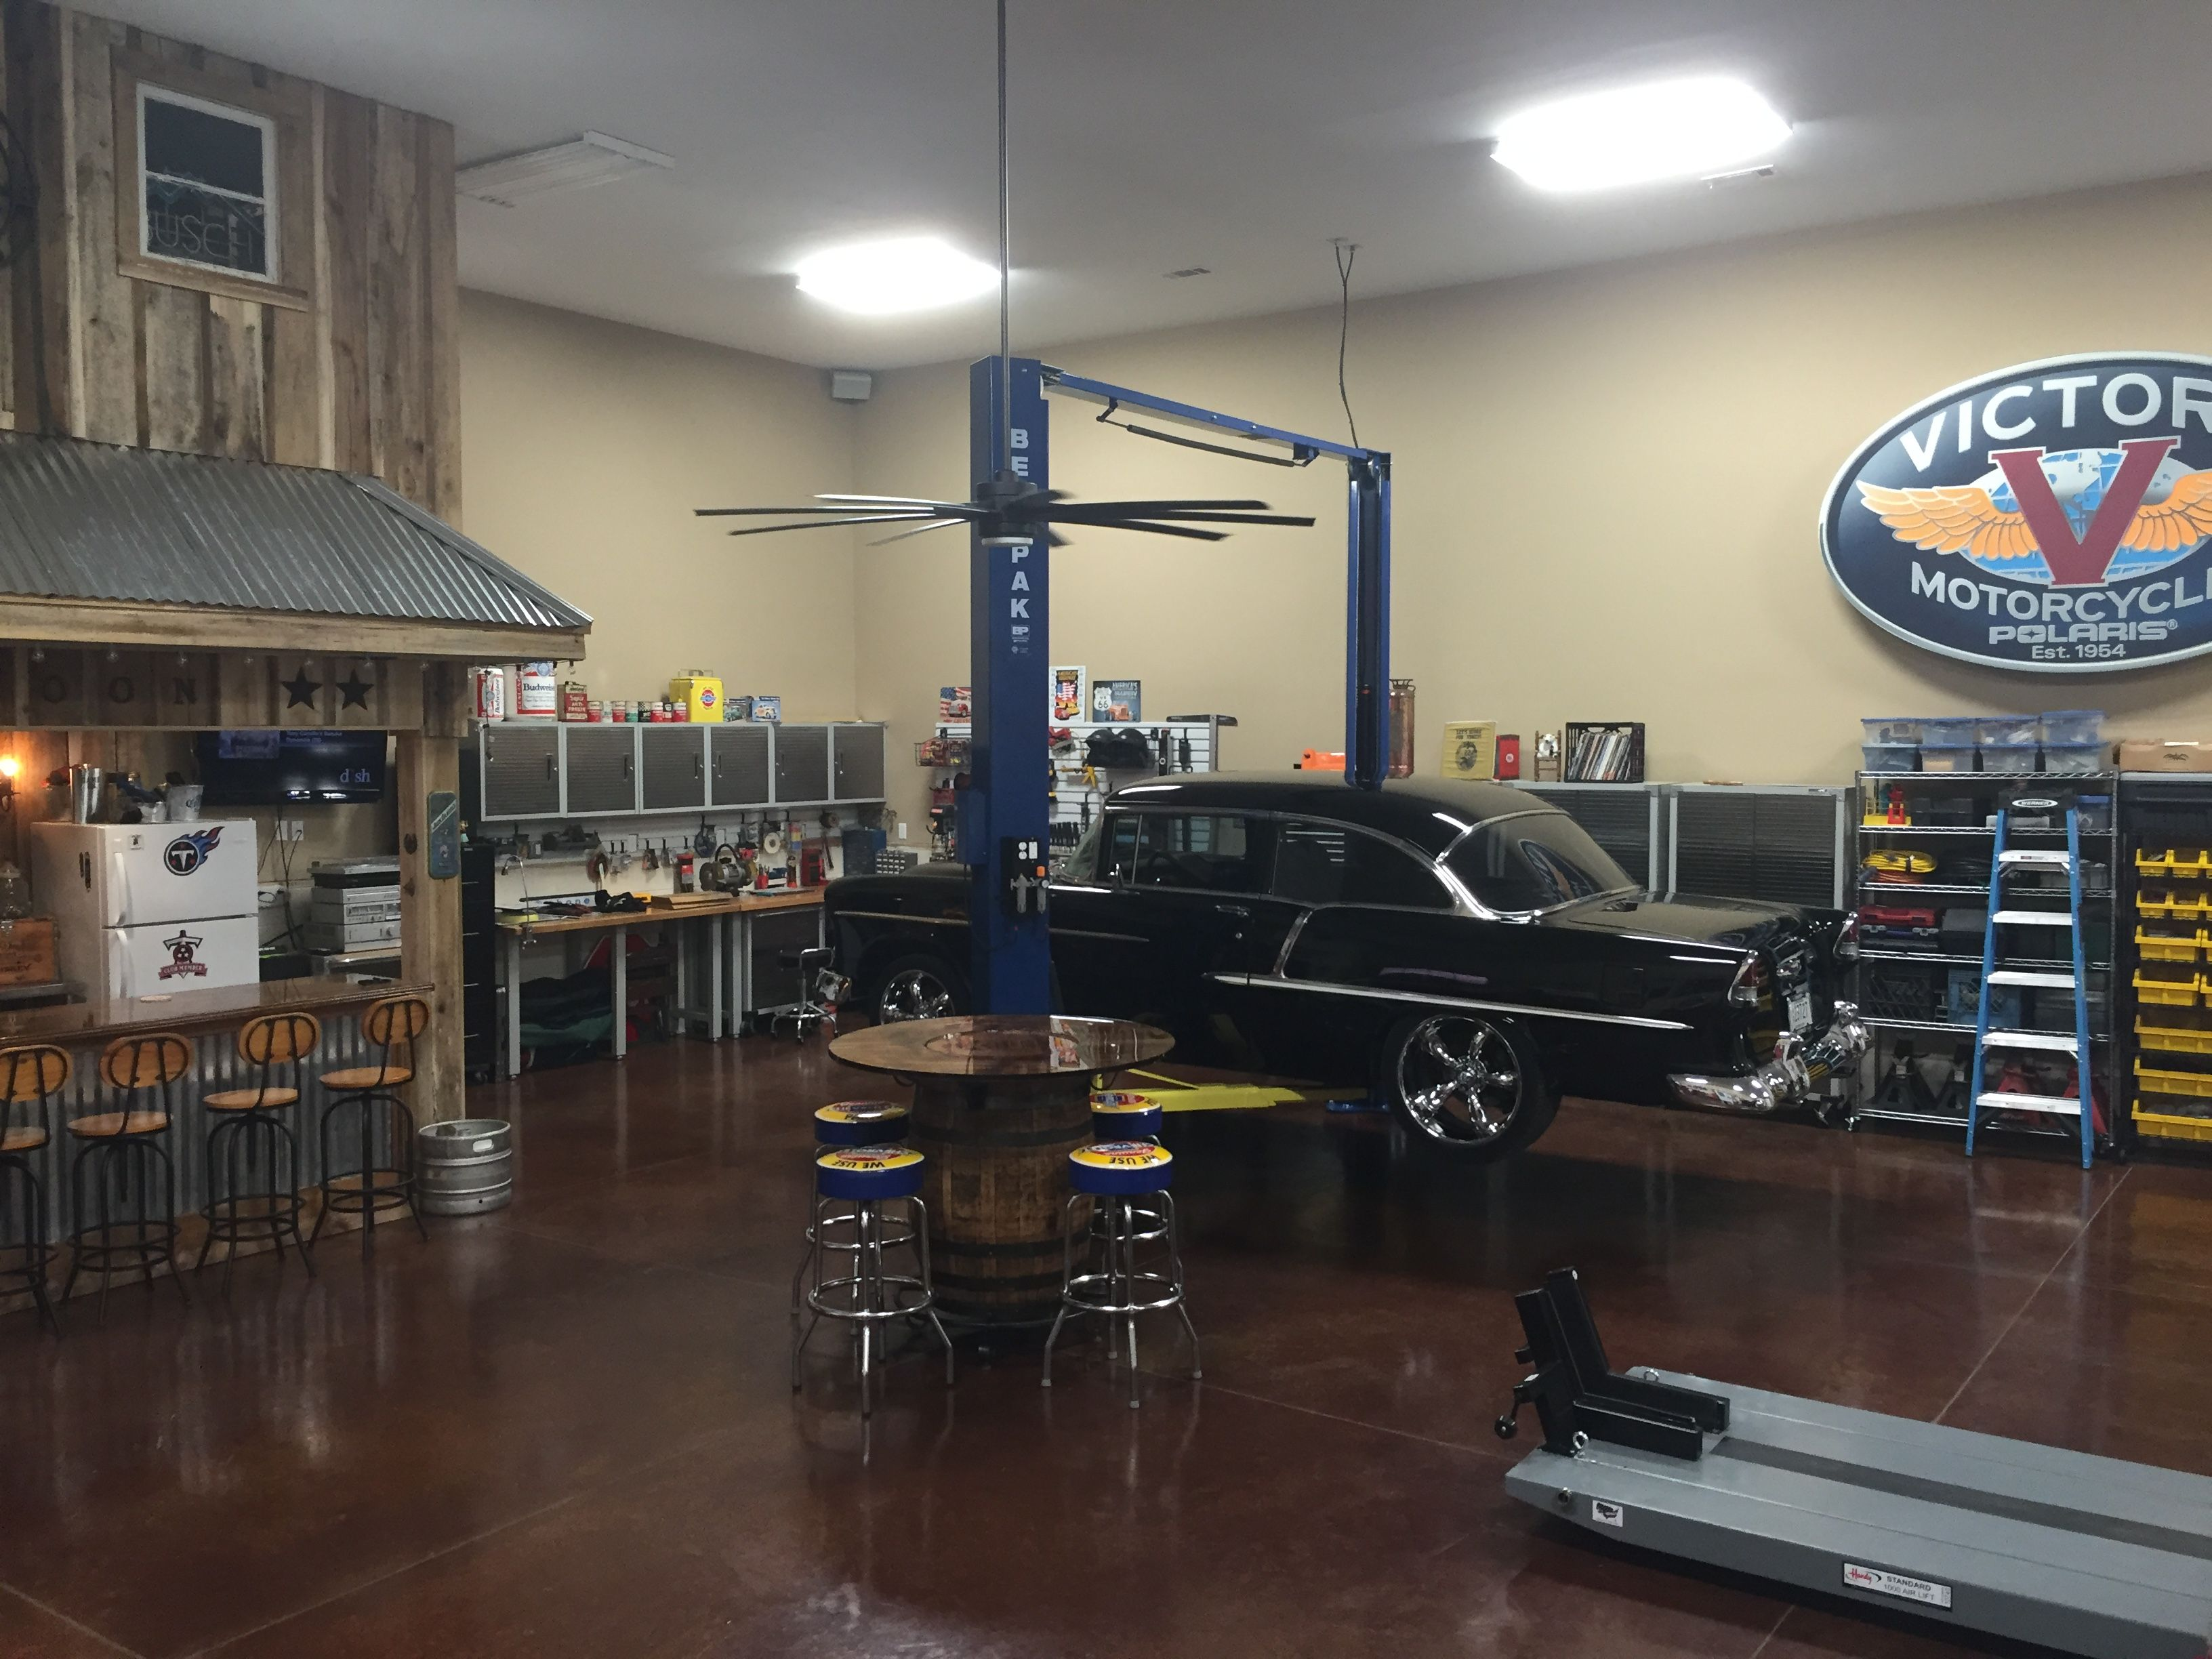 pin by bob o neal on mancave man garage garage plans on extraordinary affordable man cave garages ideas plan your dream garage id=91568